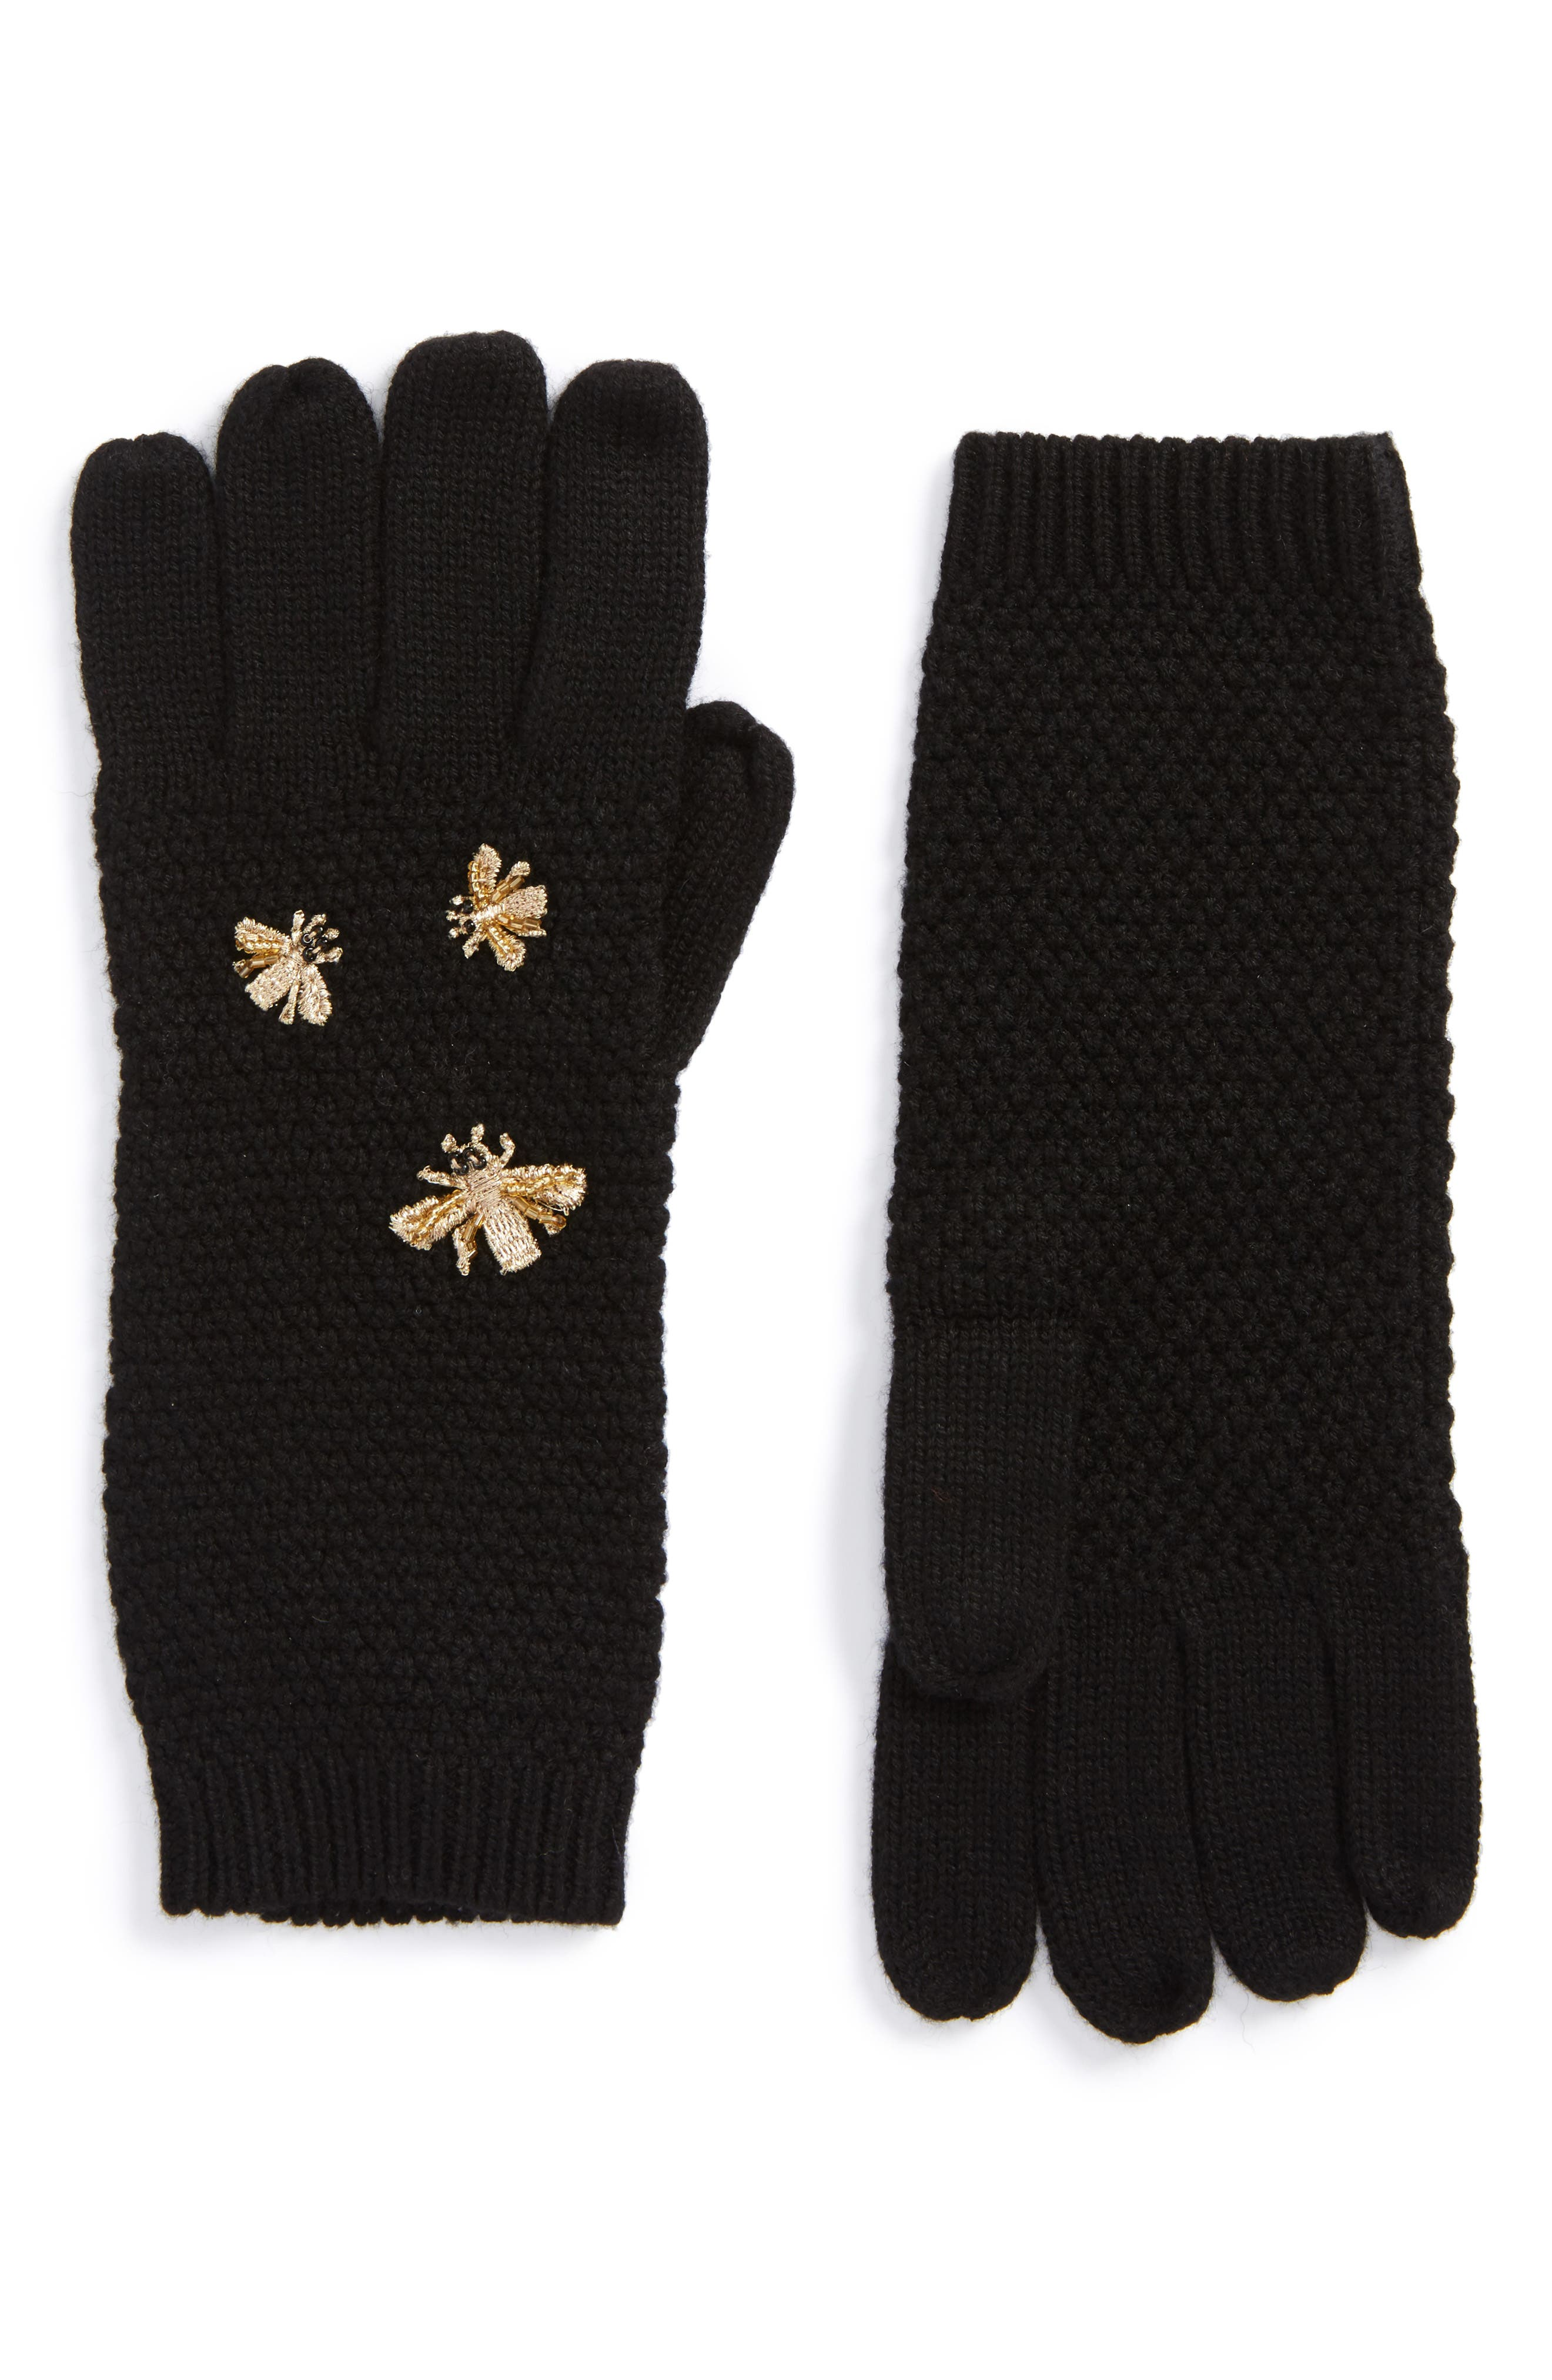 Main Image - BCBGMAXAZRIA The Bees Knees Embellished Gloves